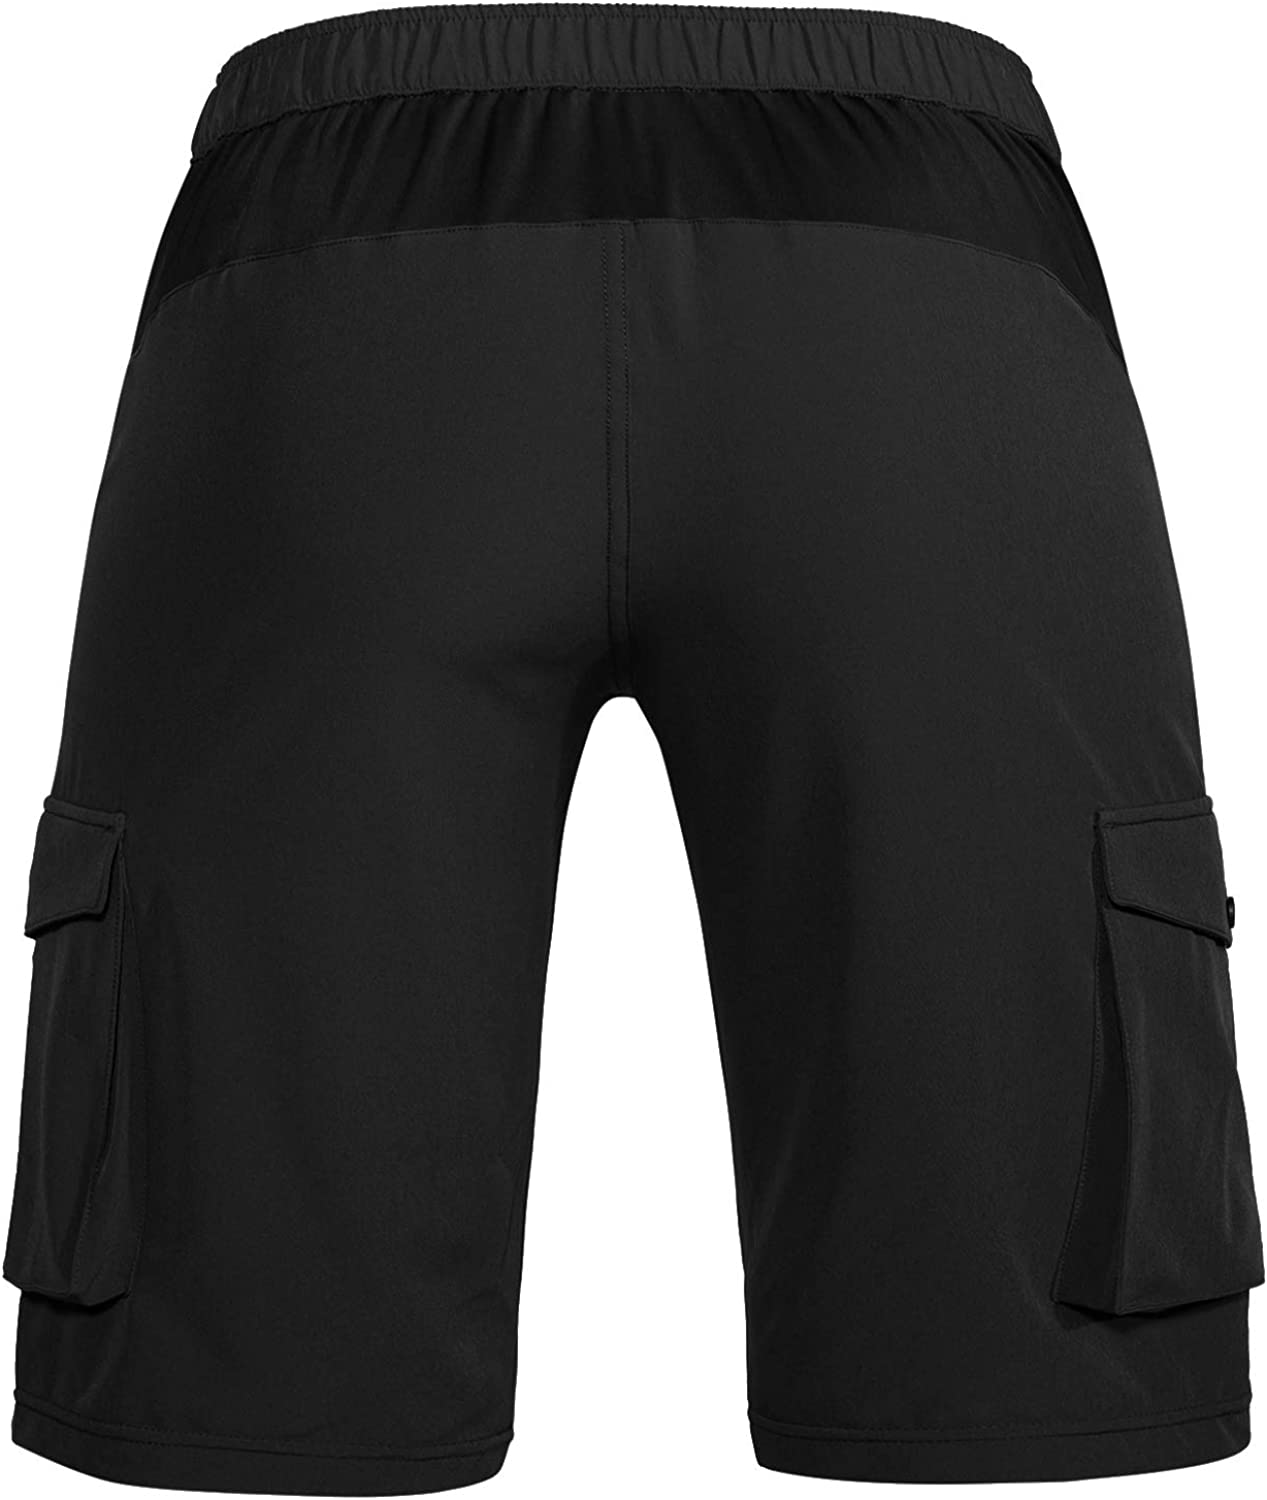 Wespornow Mens-Hiking-Shorts Lightweight-Quick-Dry-Outdoor-Cargo-Casual-Shorts for Hiking